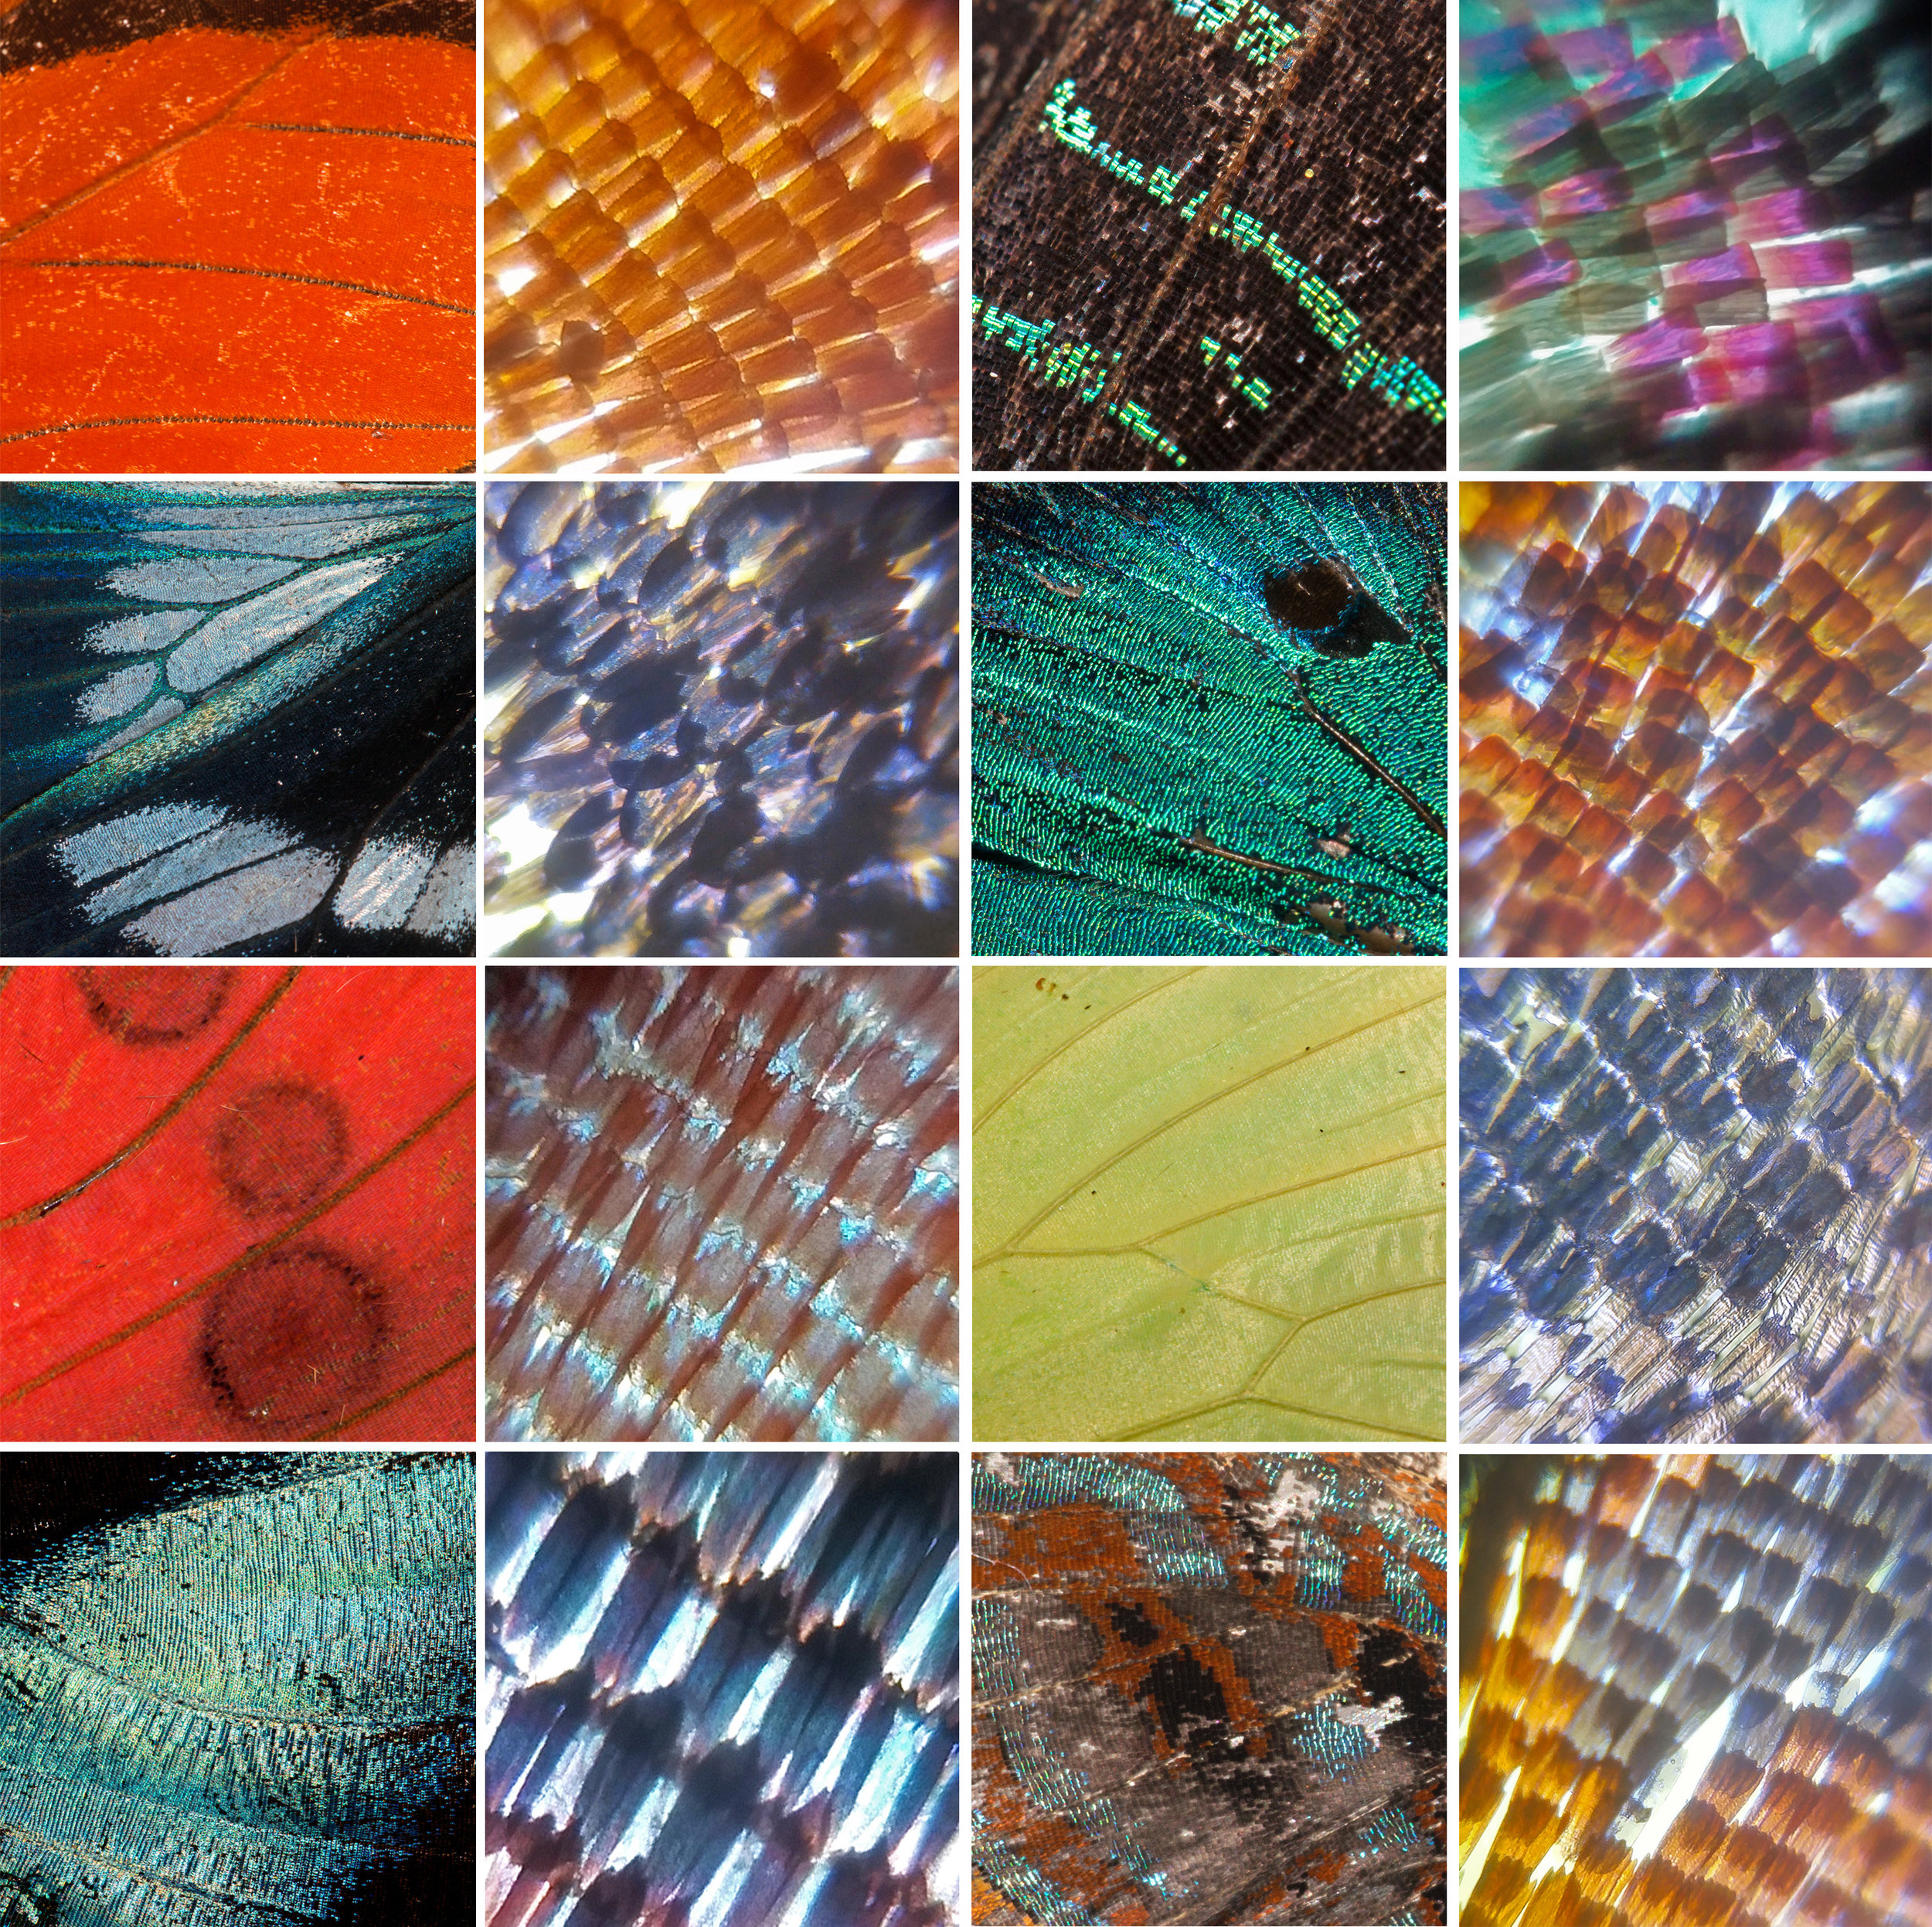 Compilation of butterfly wing scales through macro photography and Foldscope microscopy, all taken while in the field in the Amazon Rainforest.